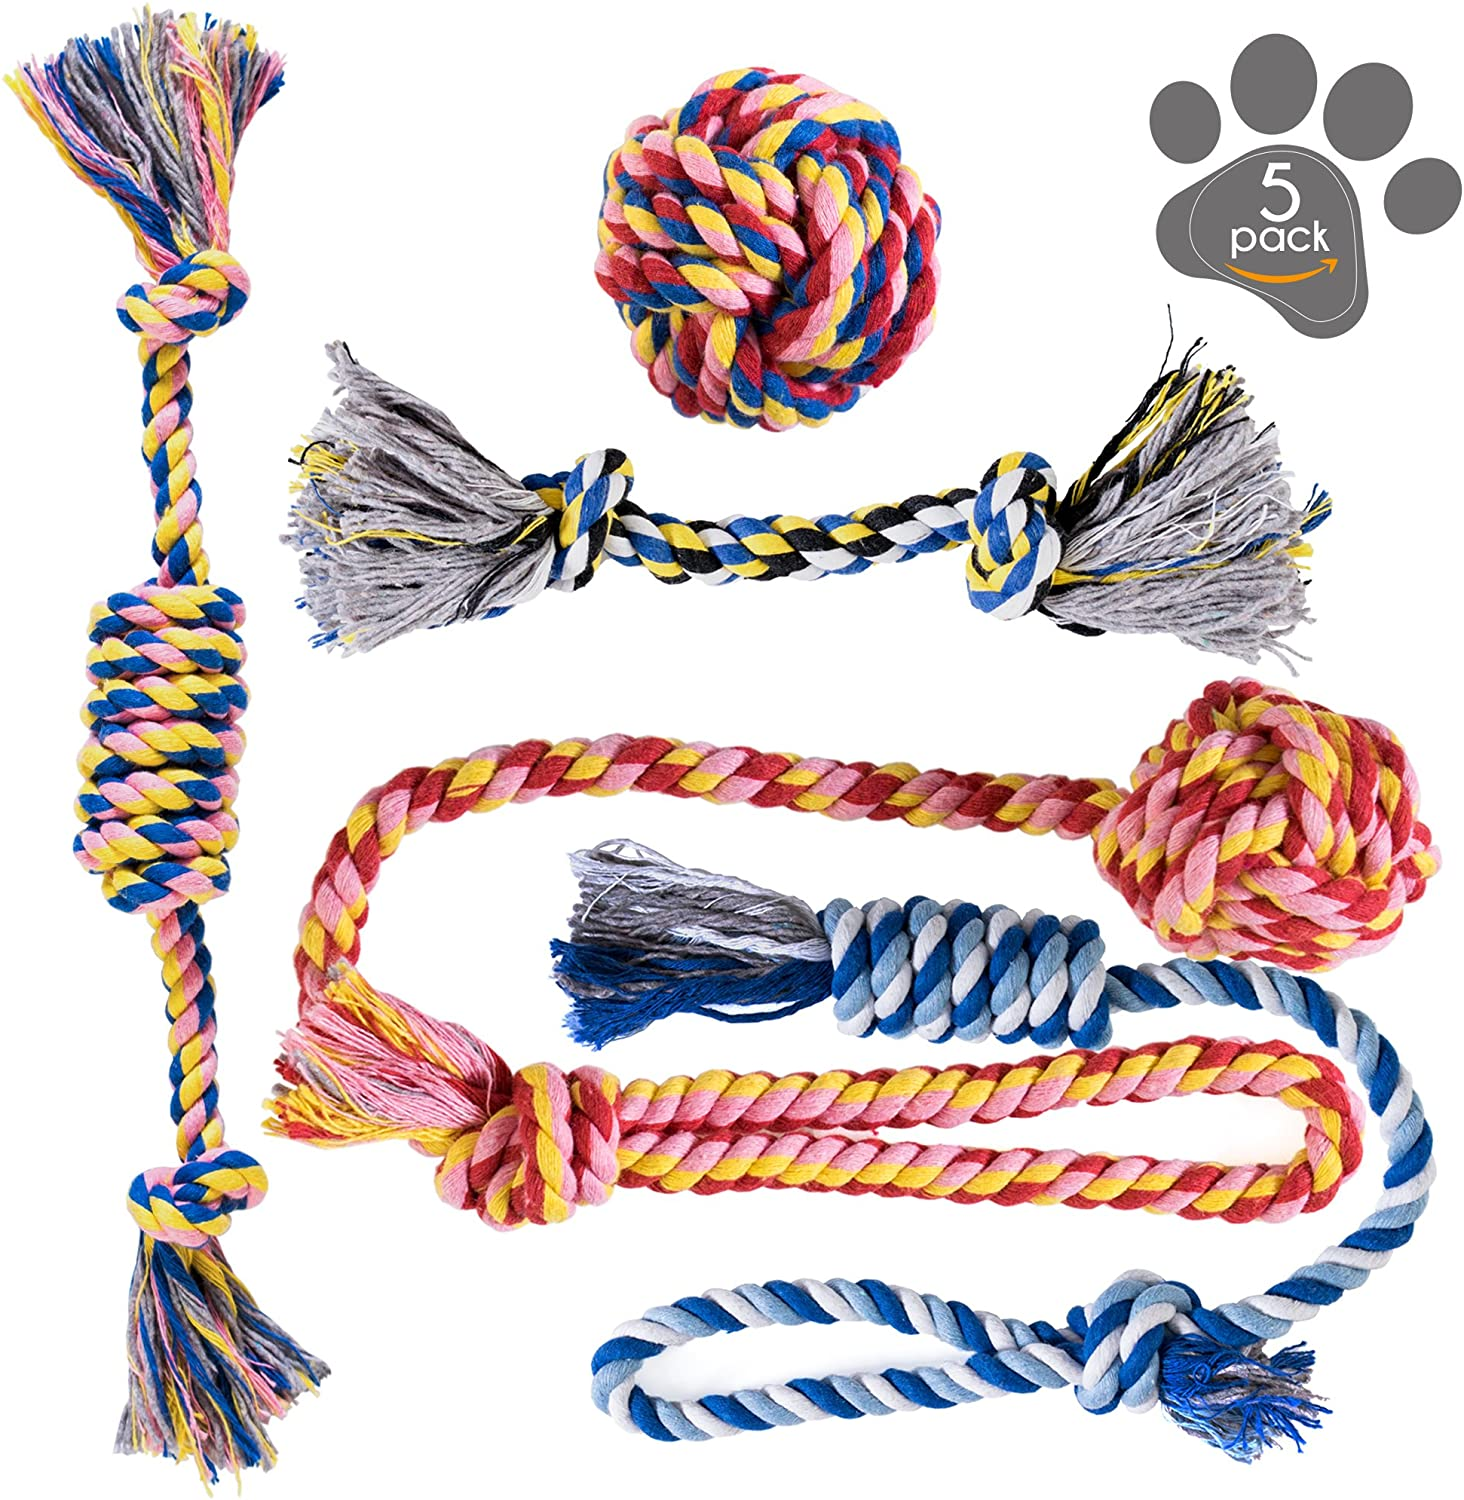 Pets&Goods Dog Rope Chew Toy Review